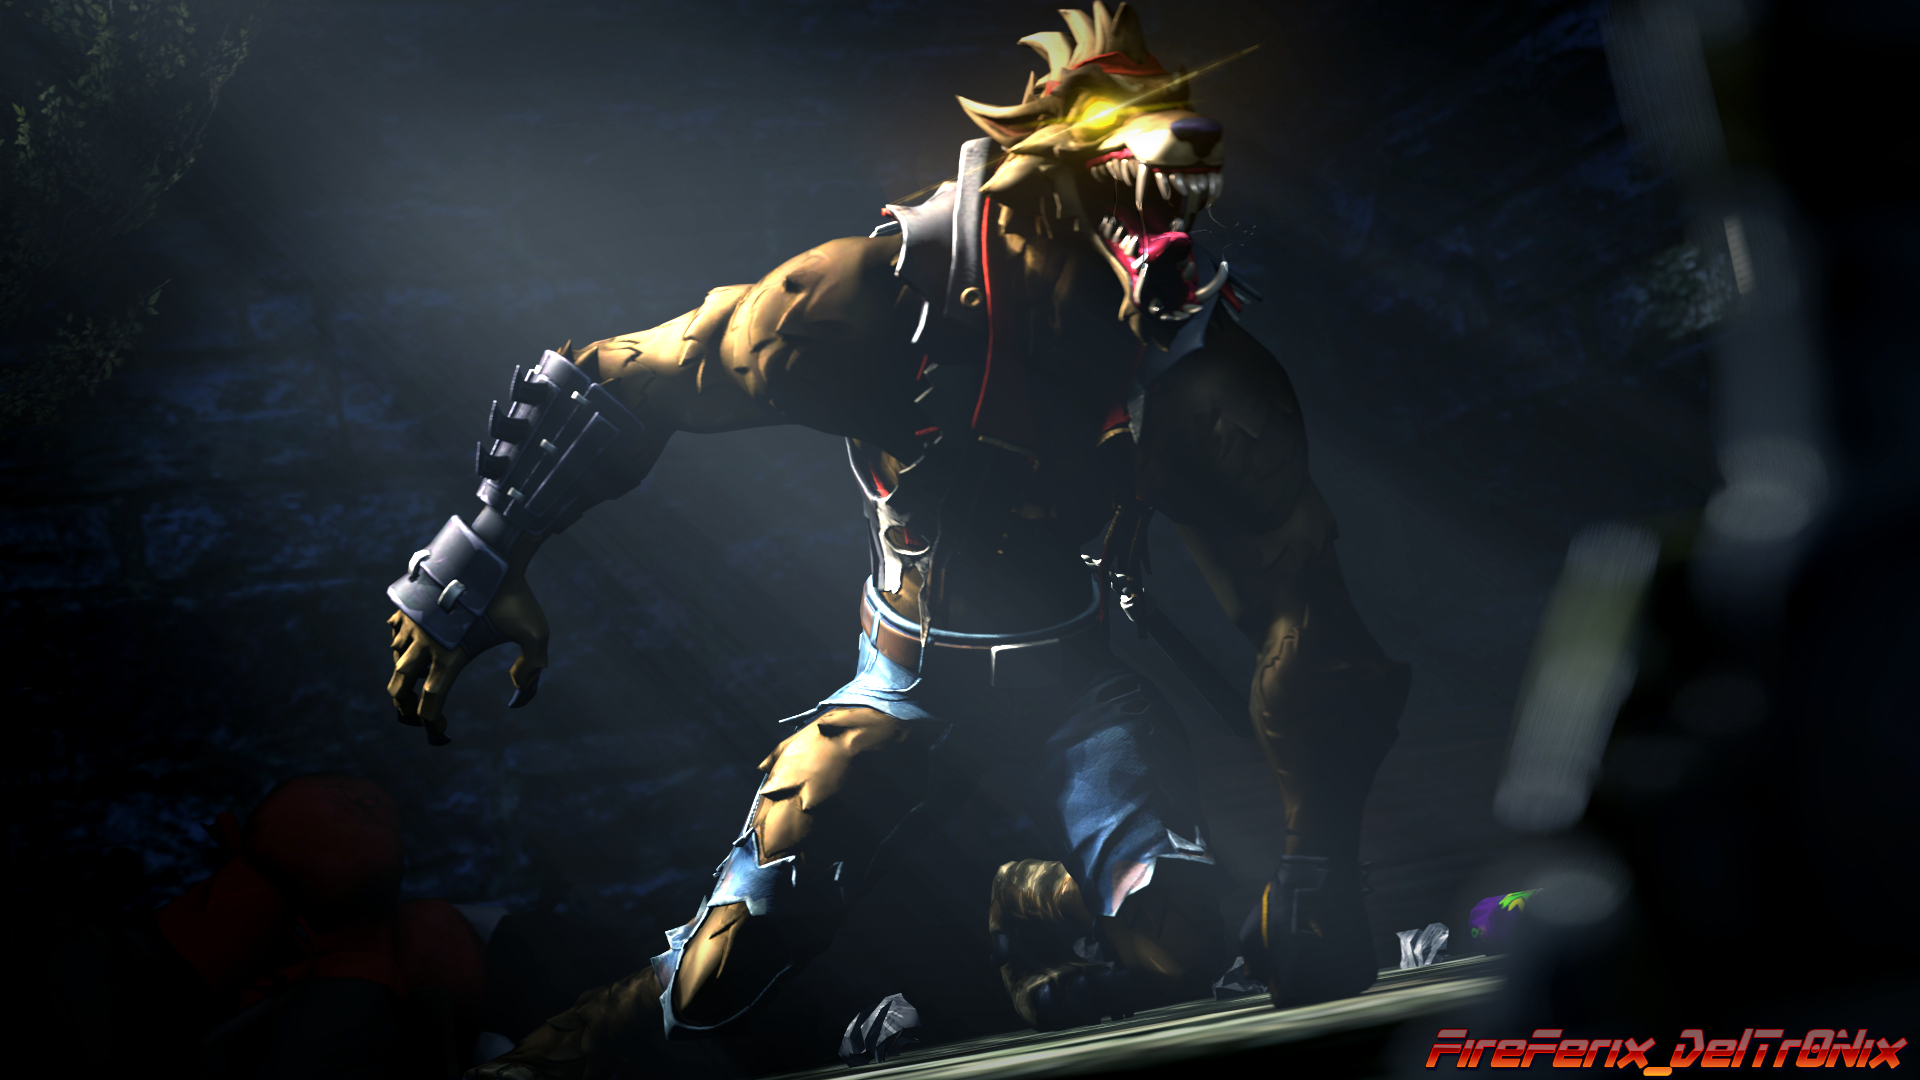 Coolest Fortnite Werewolf Skin Concept Art by Fireferix 4341 1920x1080